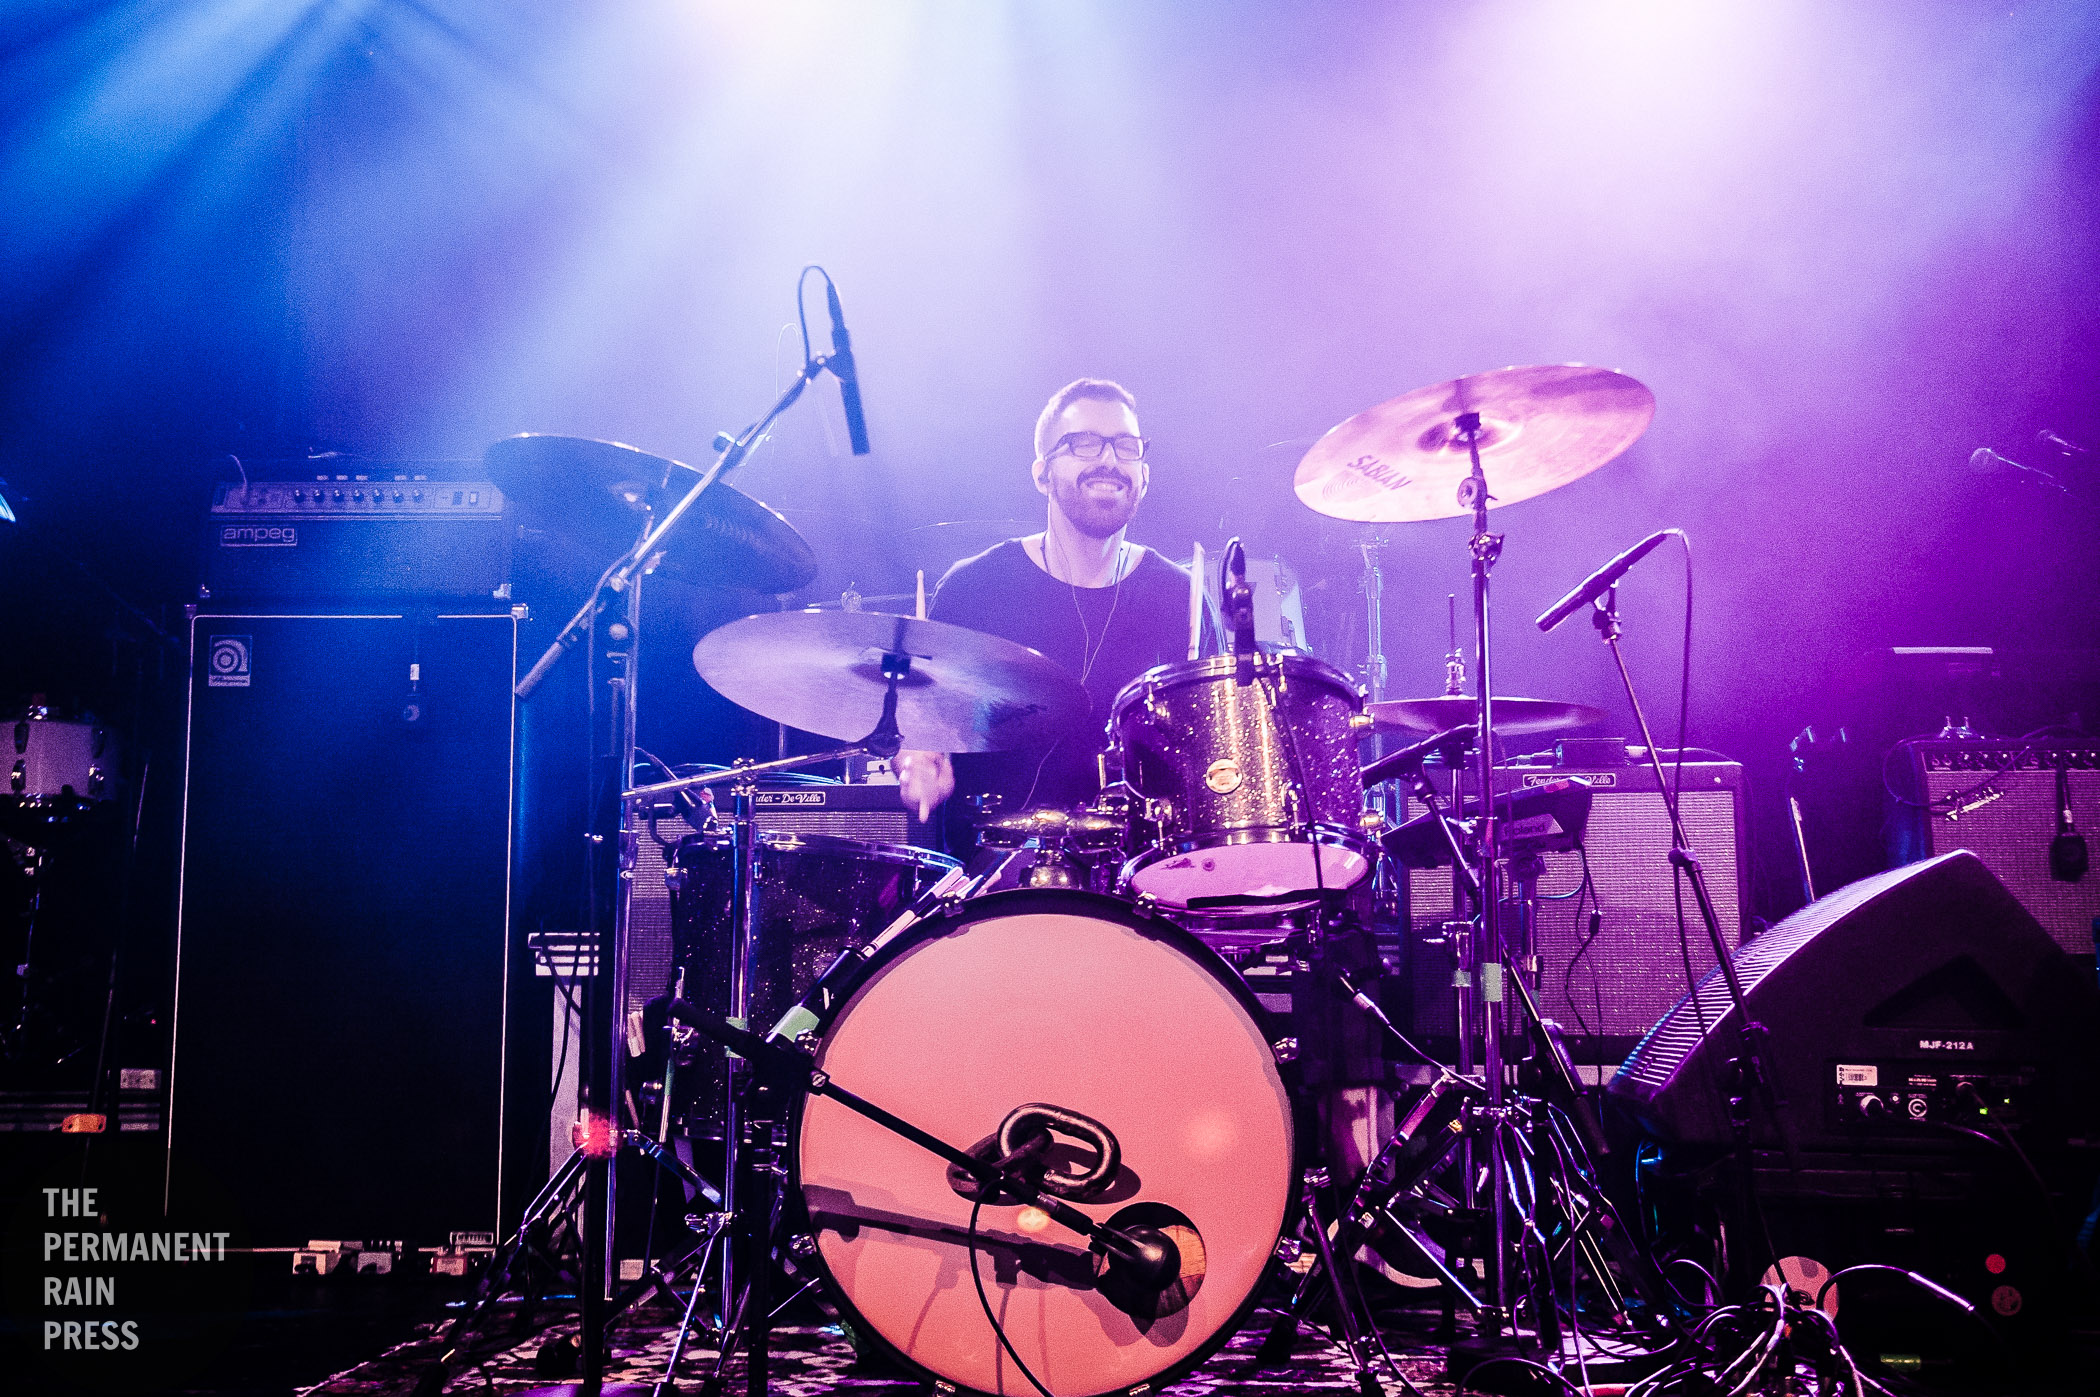 2_The_Belle_Game-Commodore_Ballroom-Timothy_Nguyen-20171020 (10 of 14).jpg